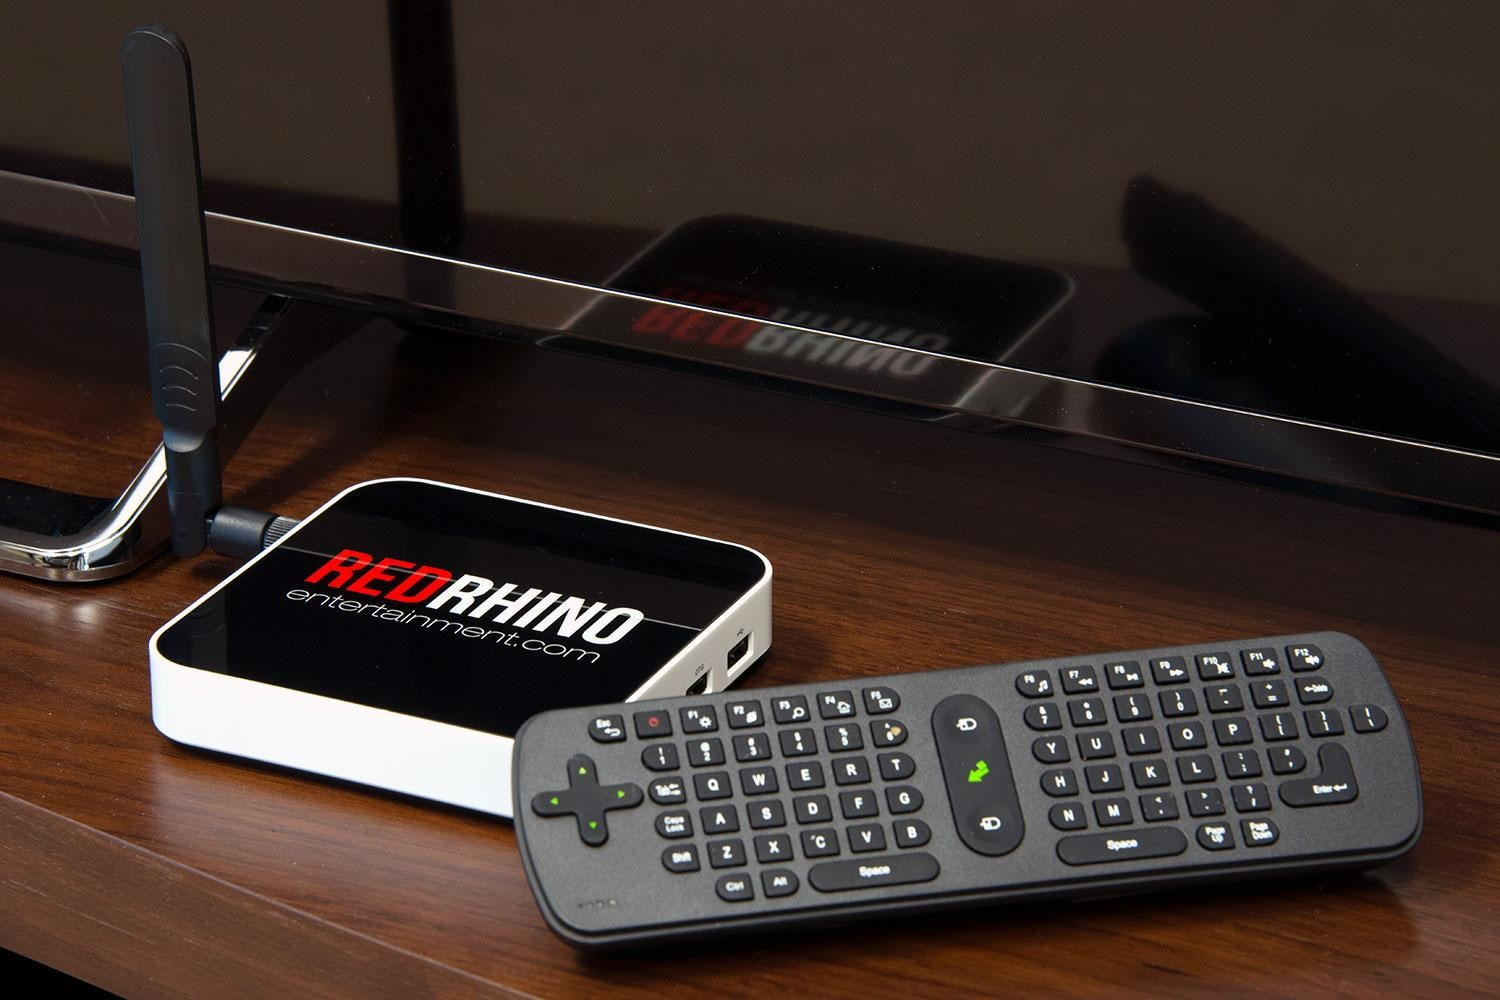 Red Rhino Entertainment Rhino Box review | Digital Trends